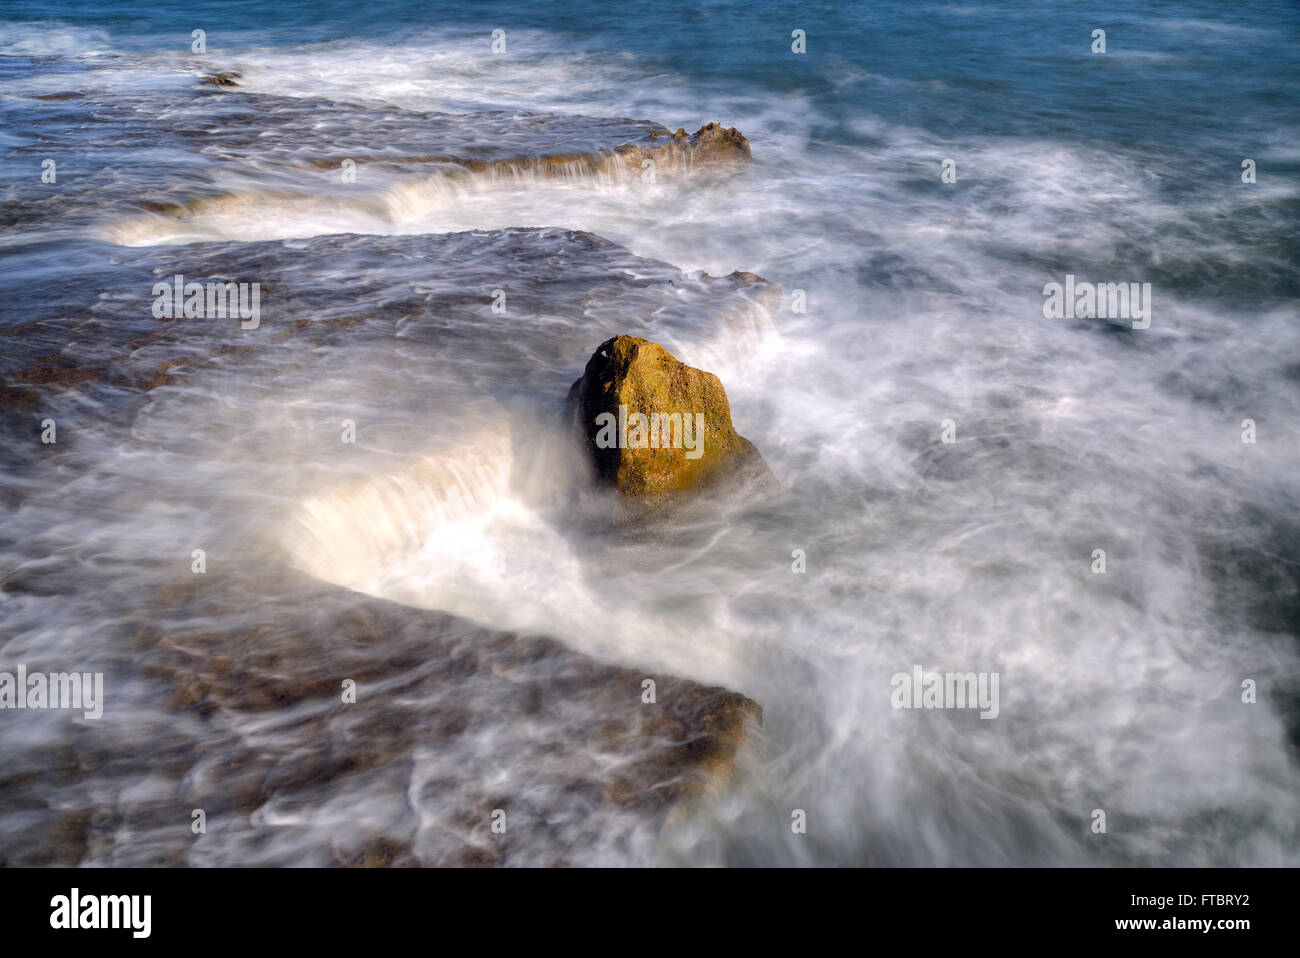 a rock in swirly water - Stock Image